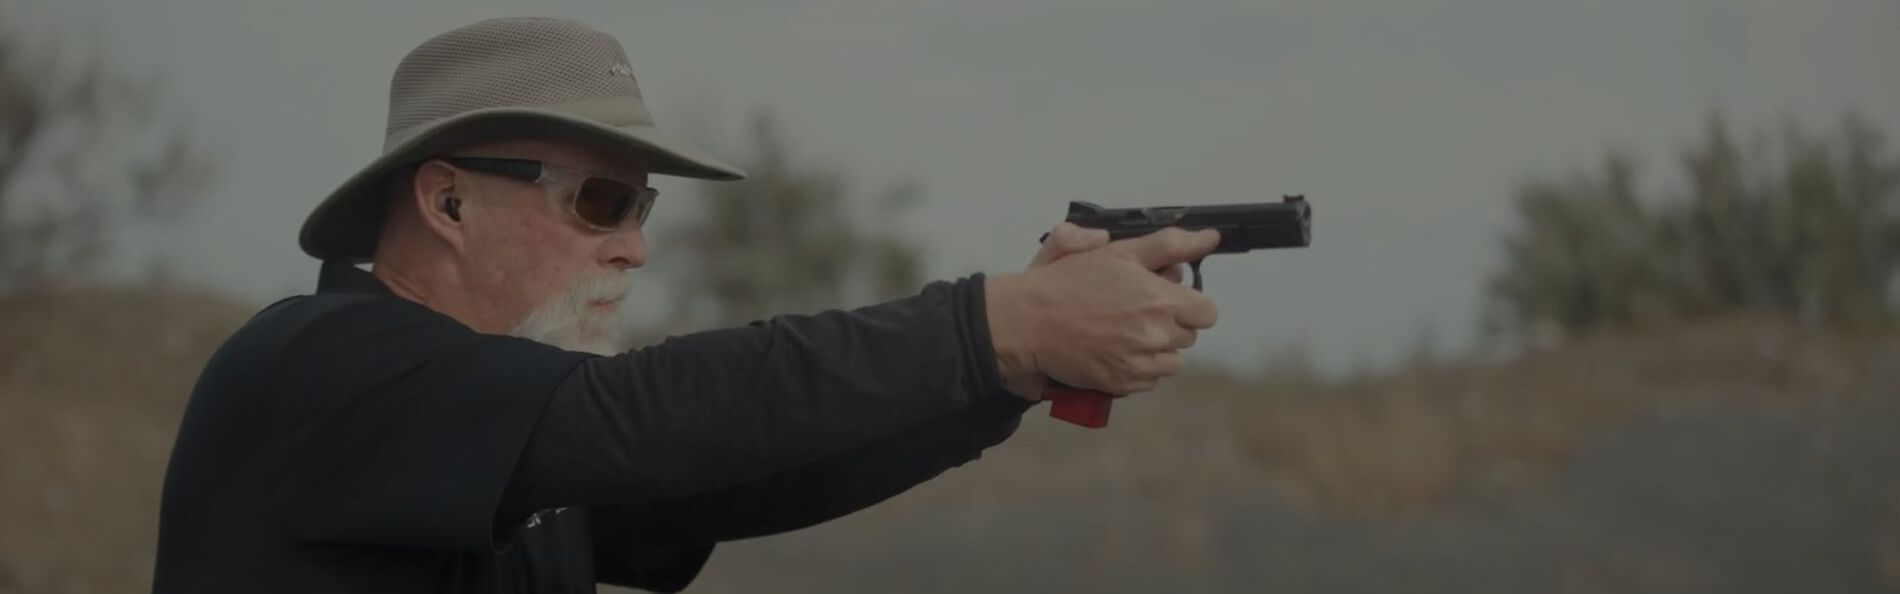 man pointing a pistol outside